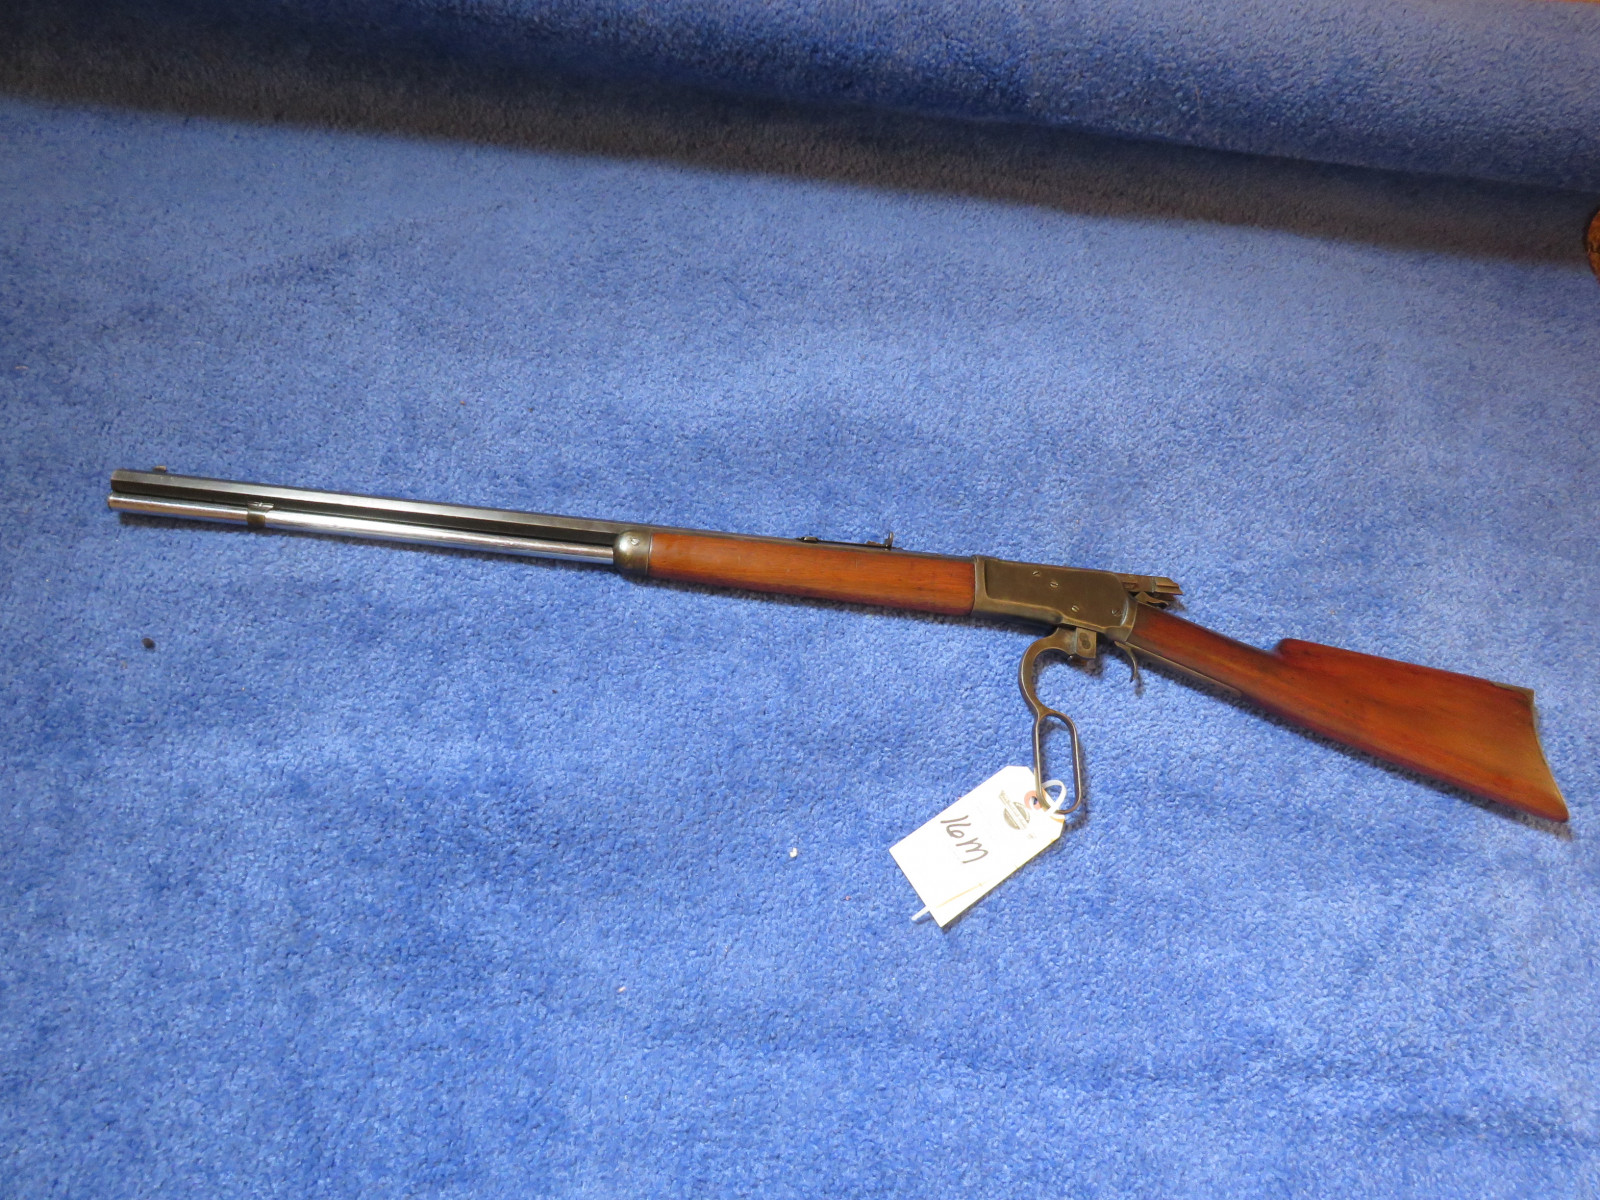 Winchester Model 1892 Lever Action Rifle - Image 2